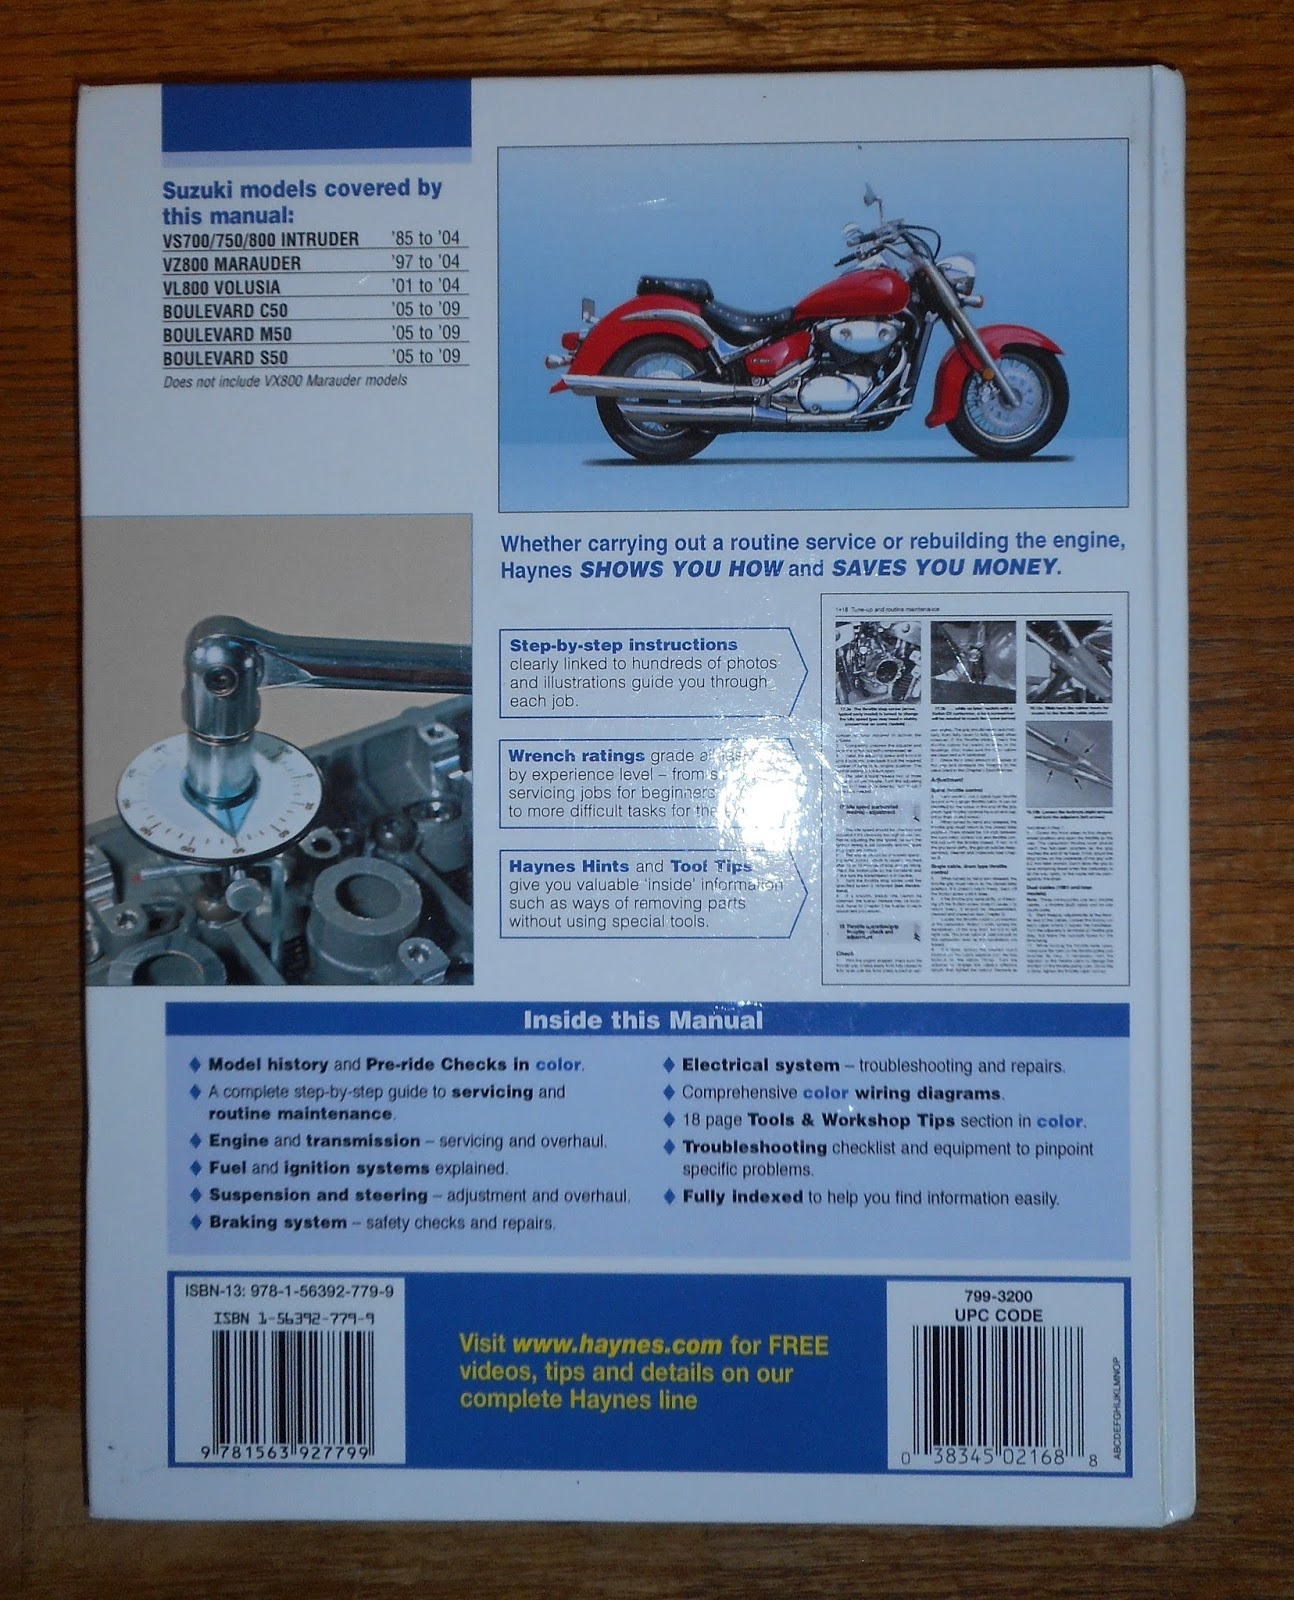 hight resolution of 1996 suzuki intruder 1400 wiring diagram nemetas aufgegabelt infowiring diagram for 1996 suzuki intruder 1400